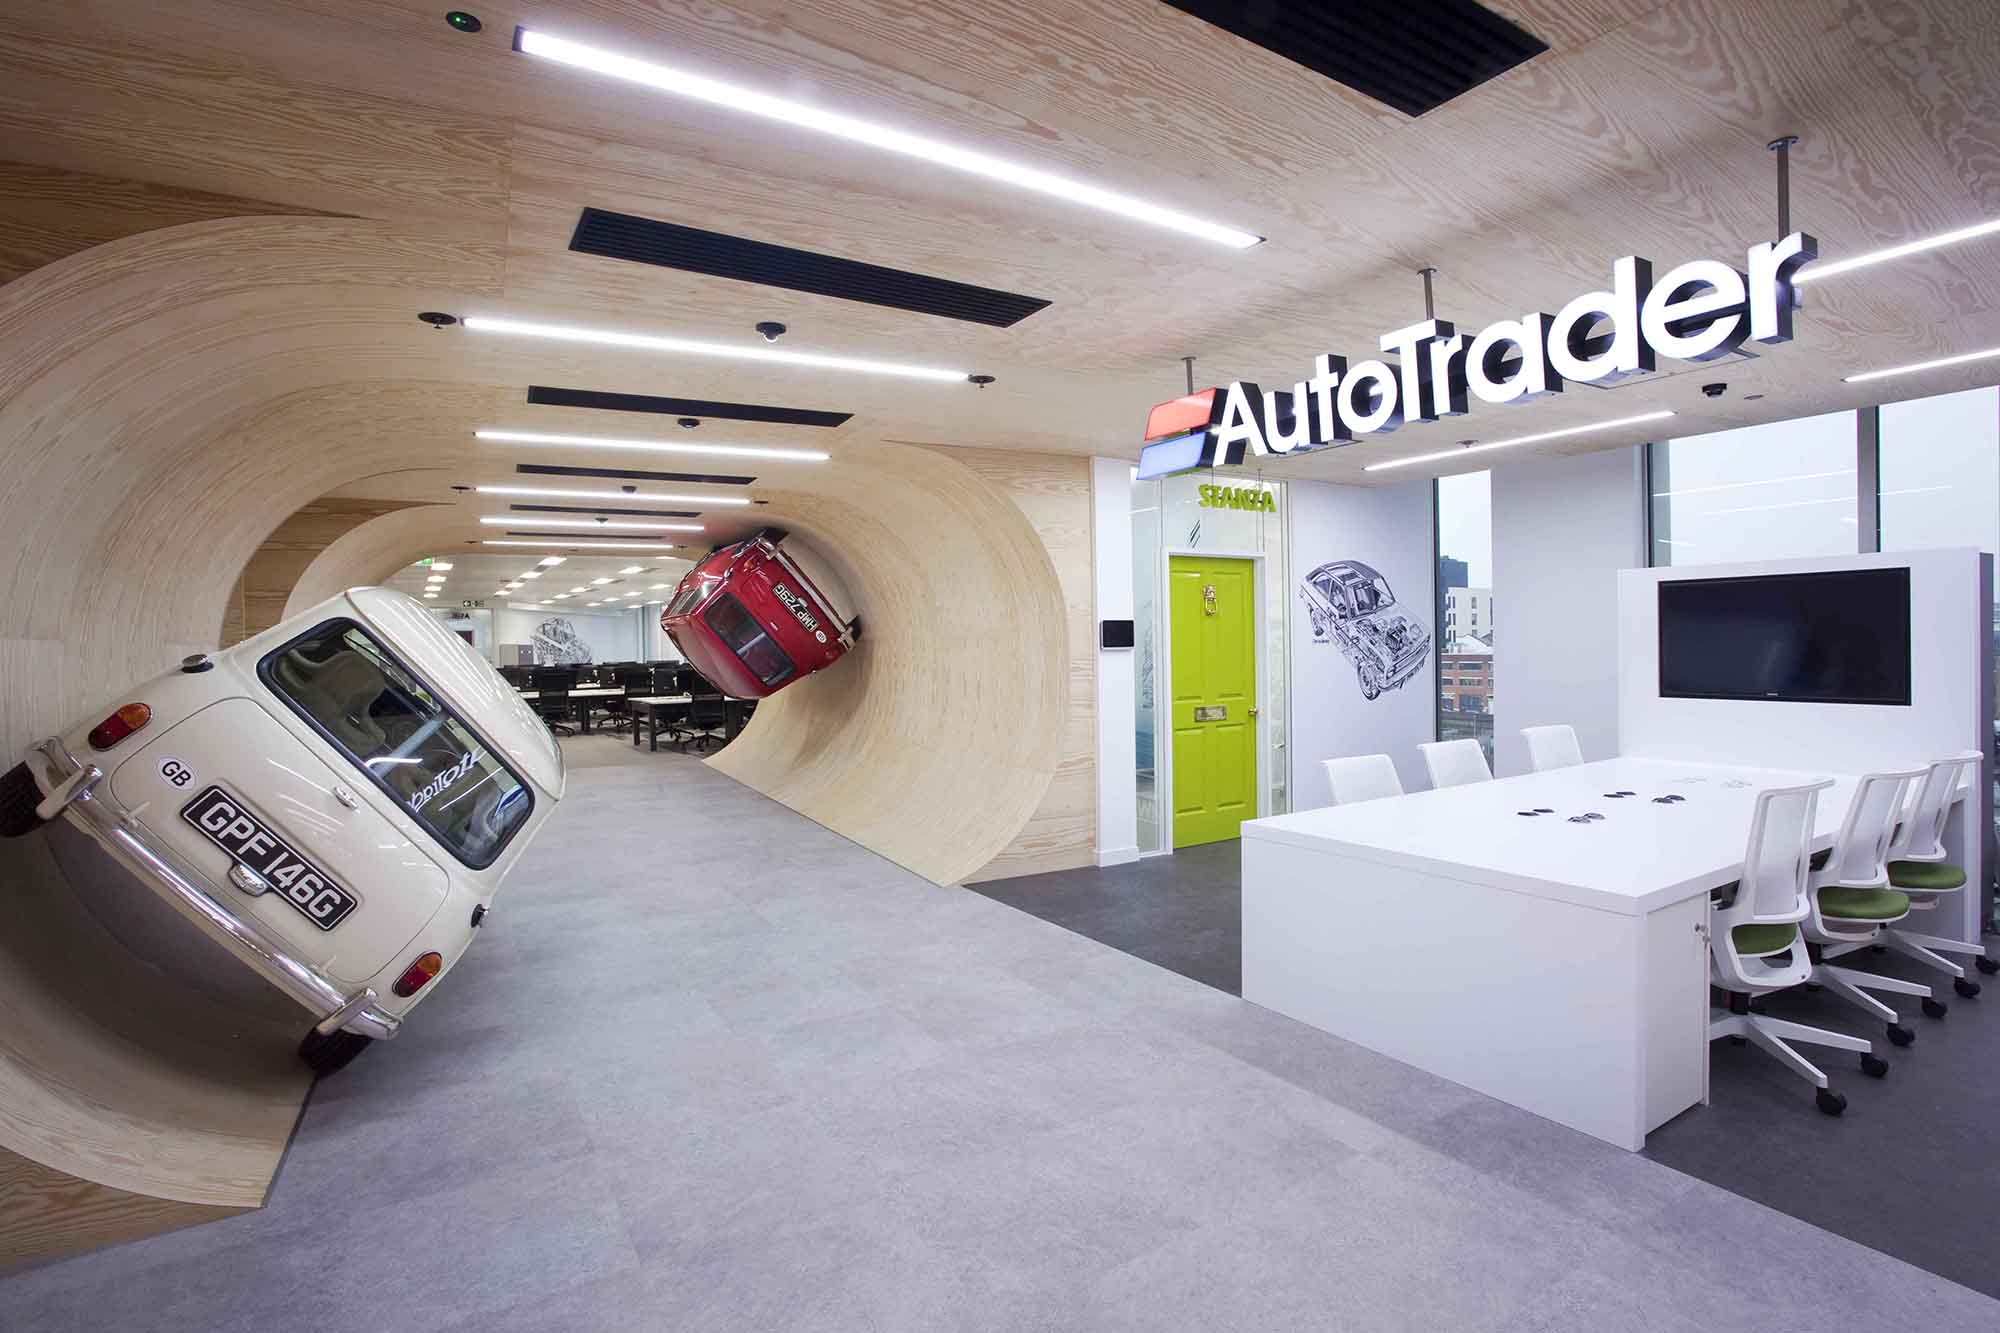 A Look Inside Autotrader's Cool London Office